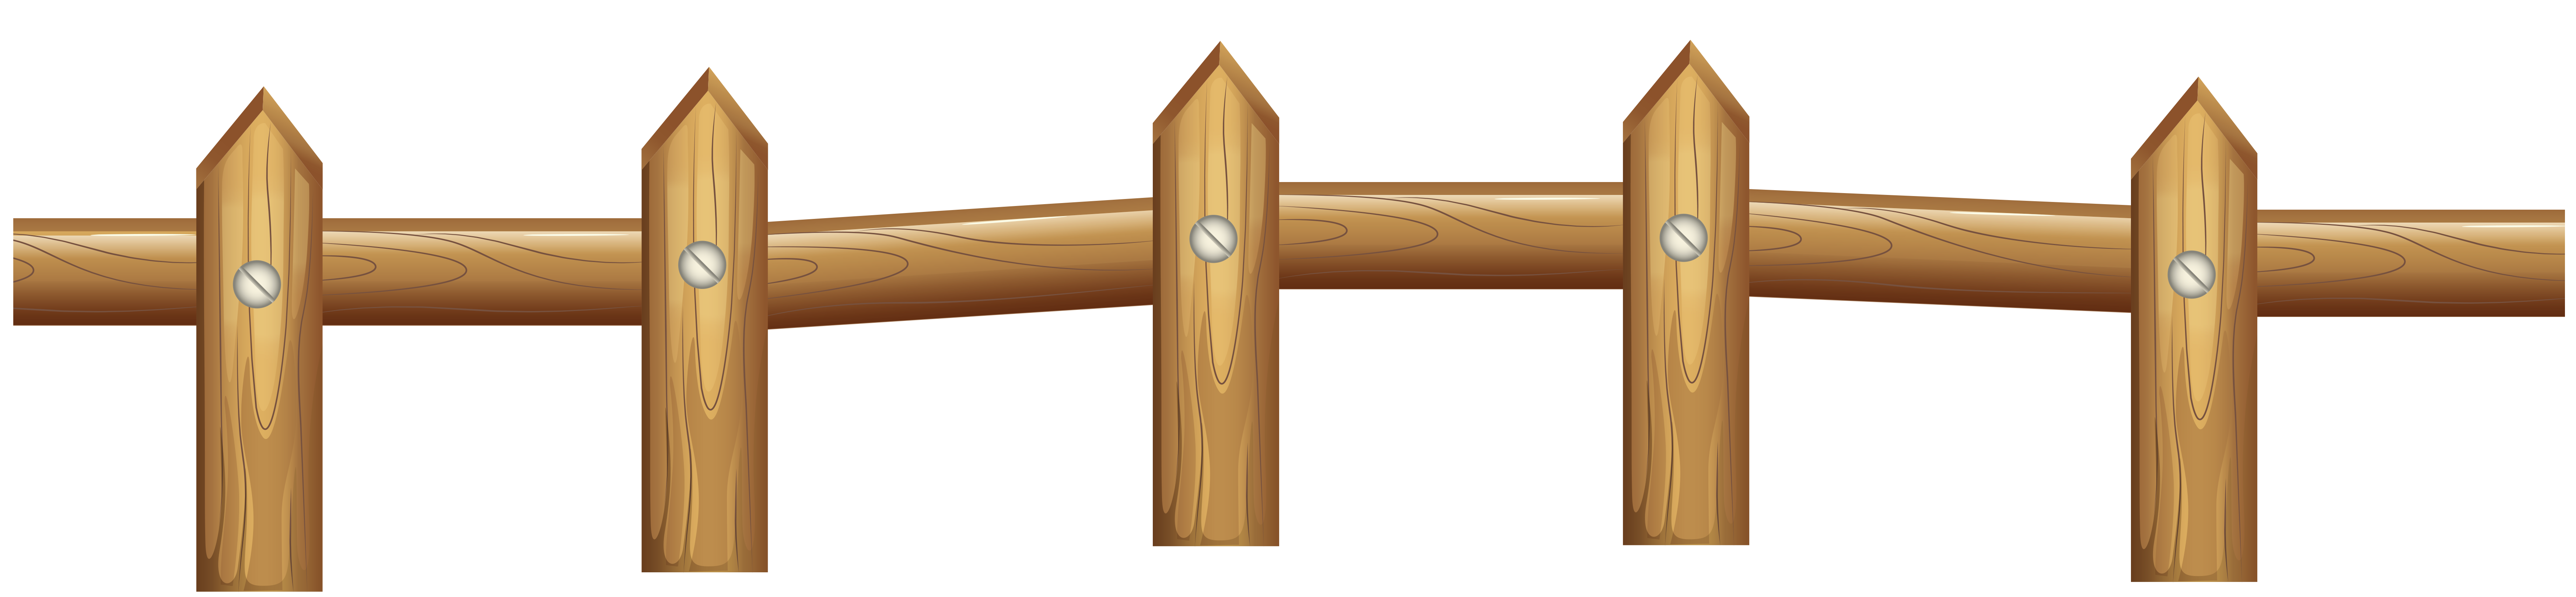 Fence clipart wood fence.  collection of transparent